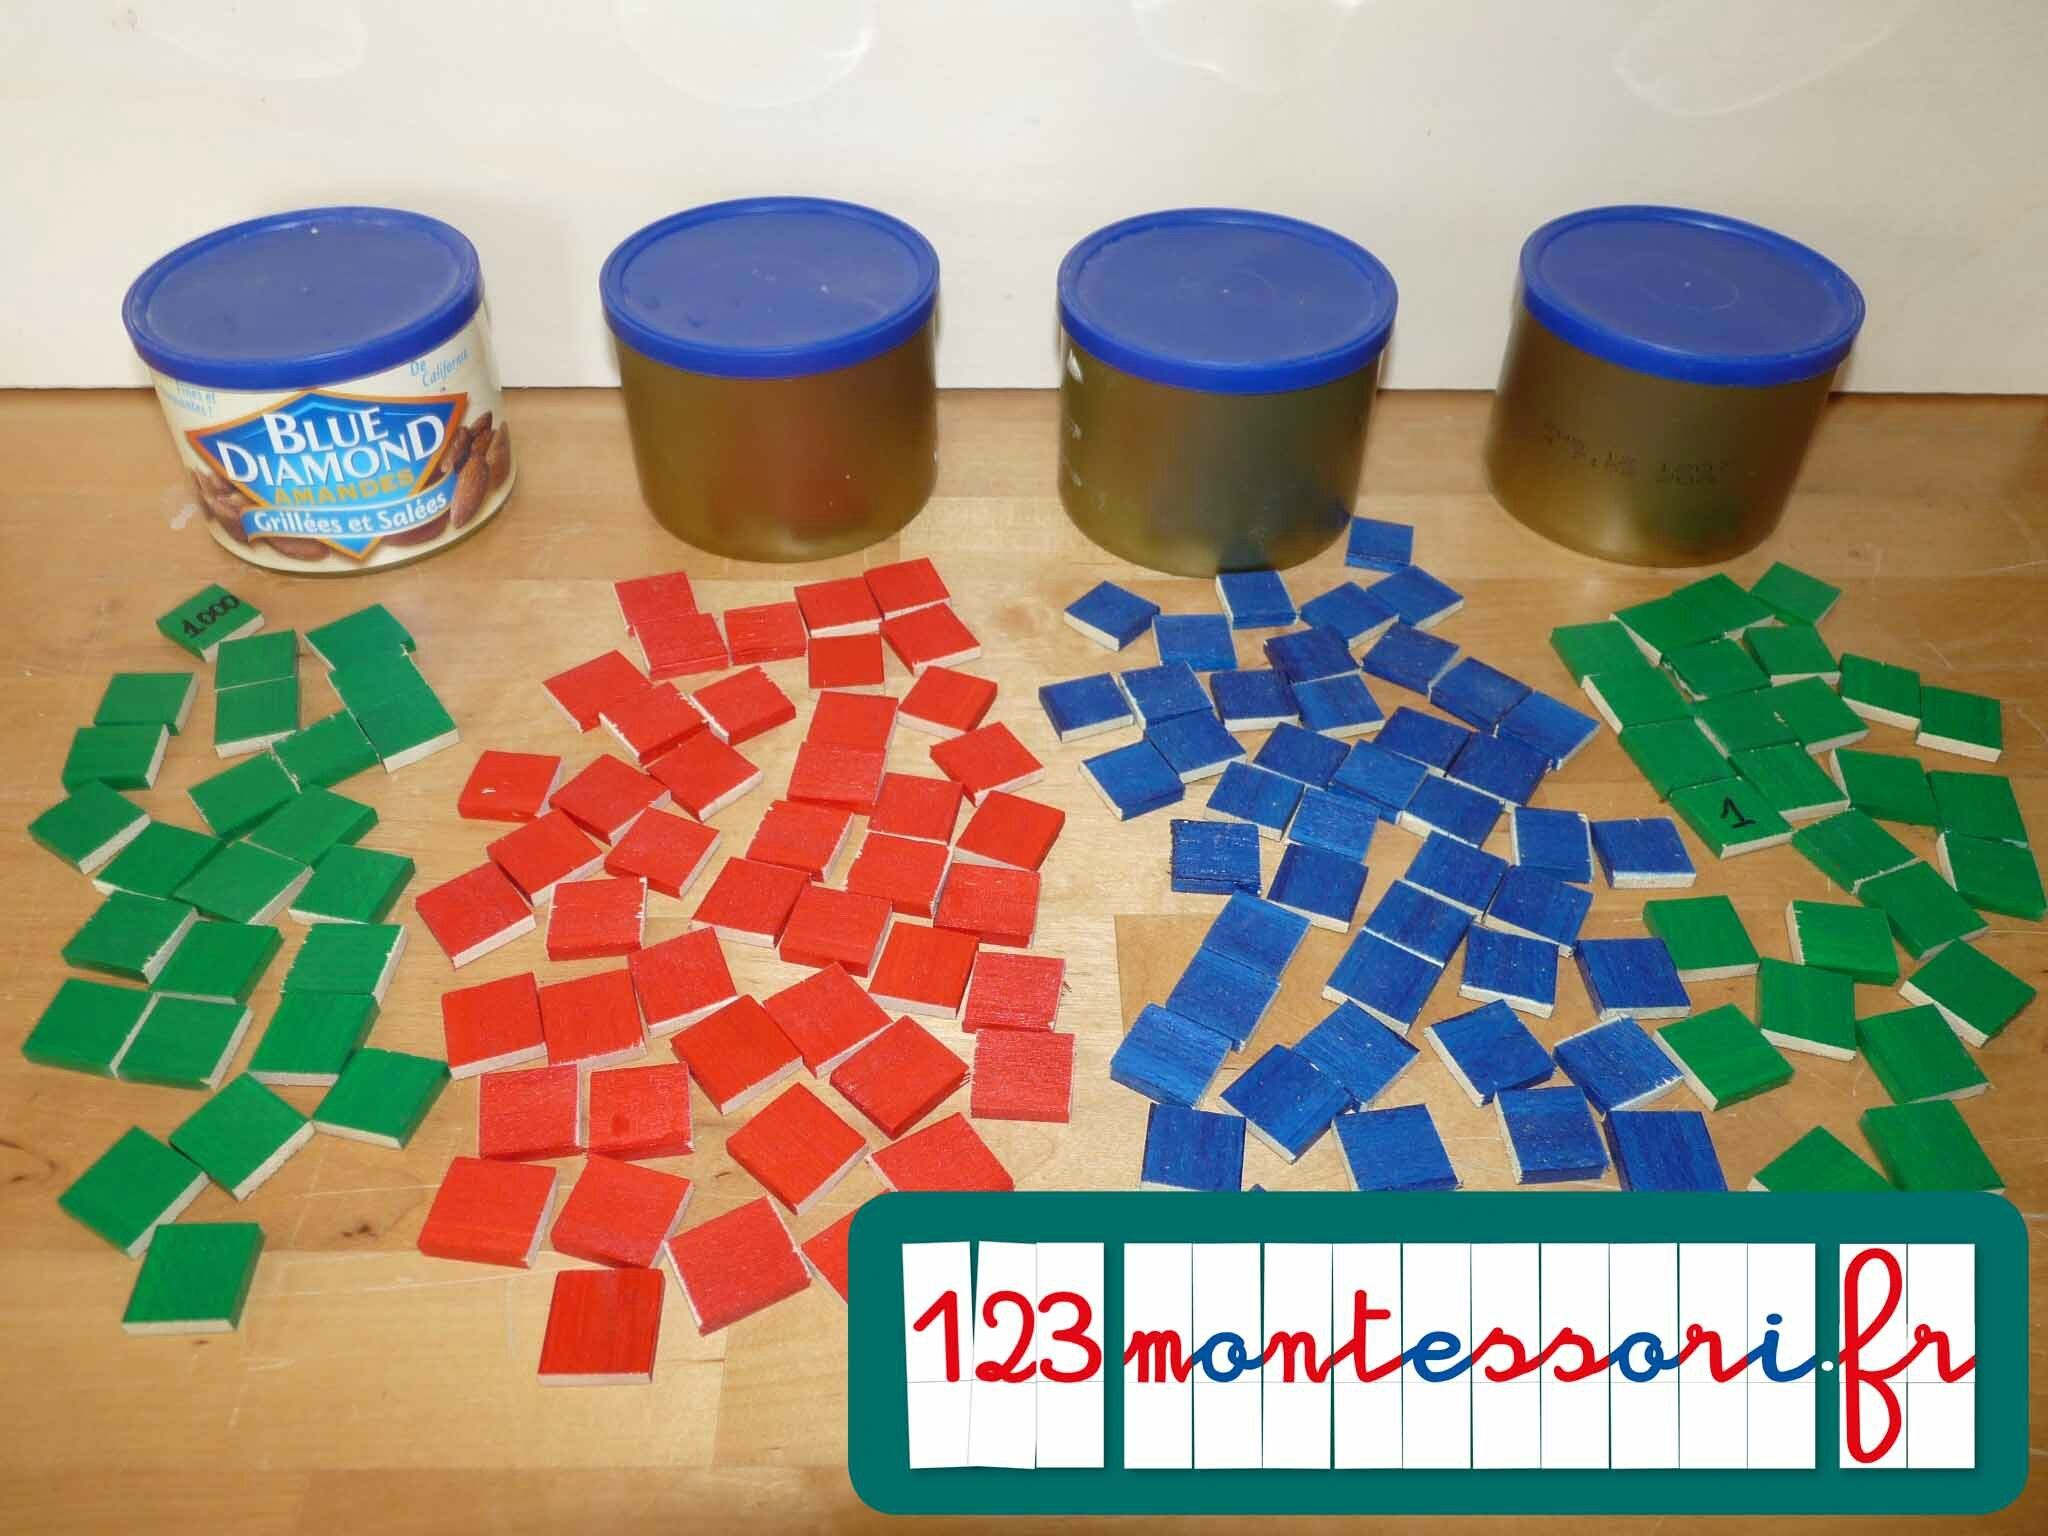 Bevorzugt Fabrication du jeu de timbres - 123Montessori, le blog AN95